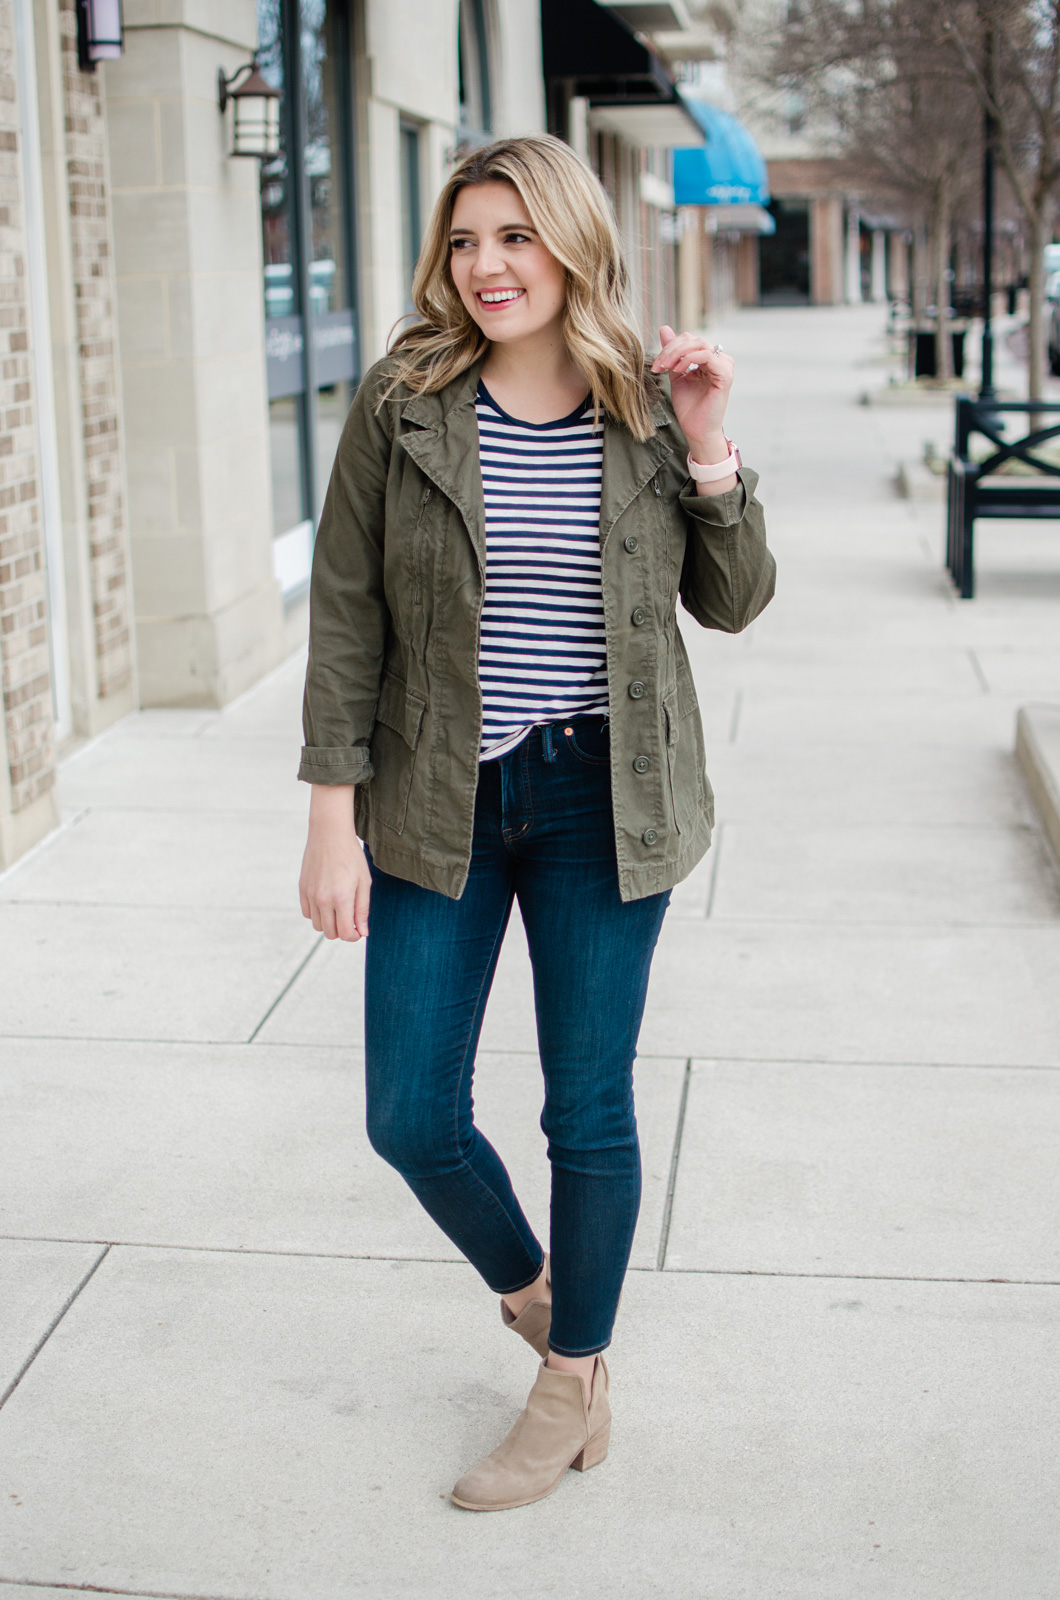 Richmond Virginia blogger, Lauren Dix, shares four striped top outfits. Learn how to take dark wash denim and a striped tee from work to the weekend!